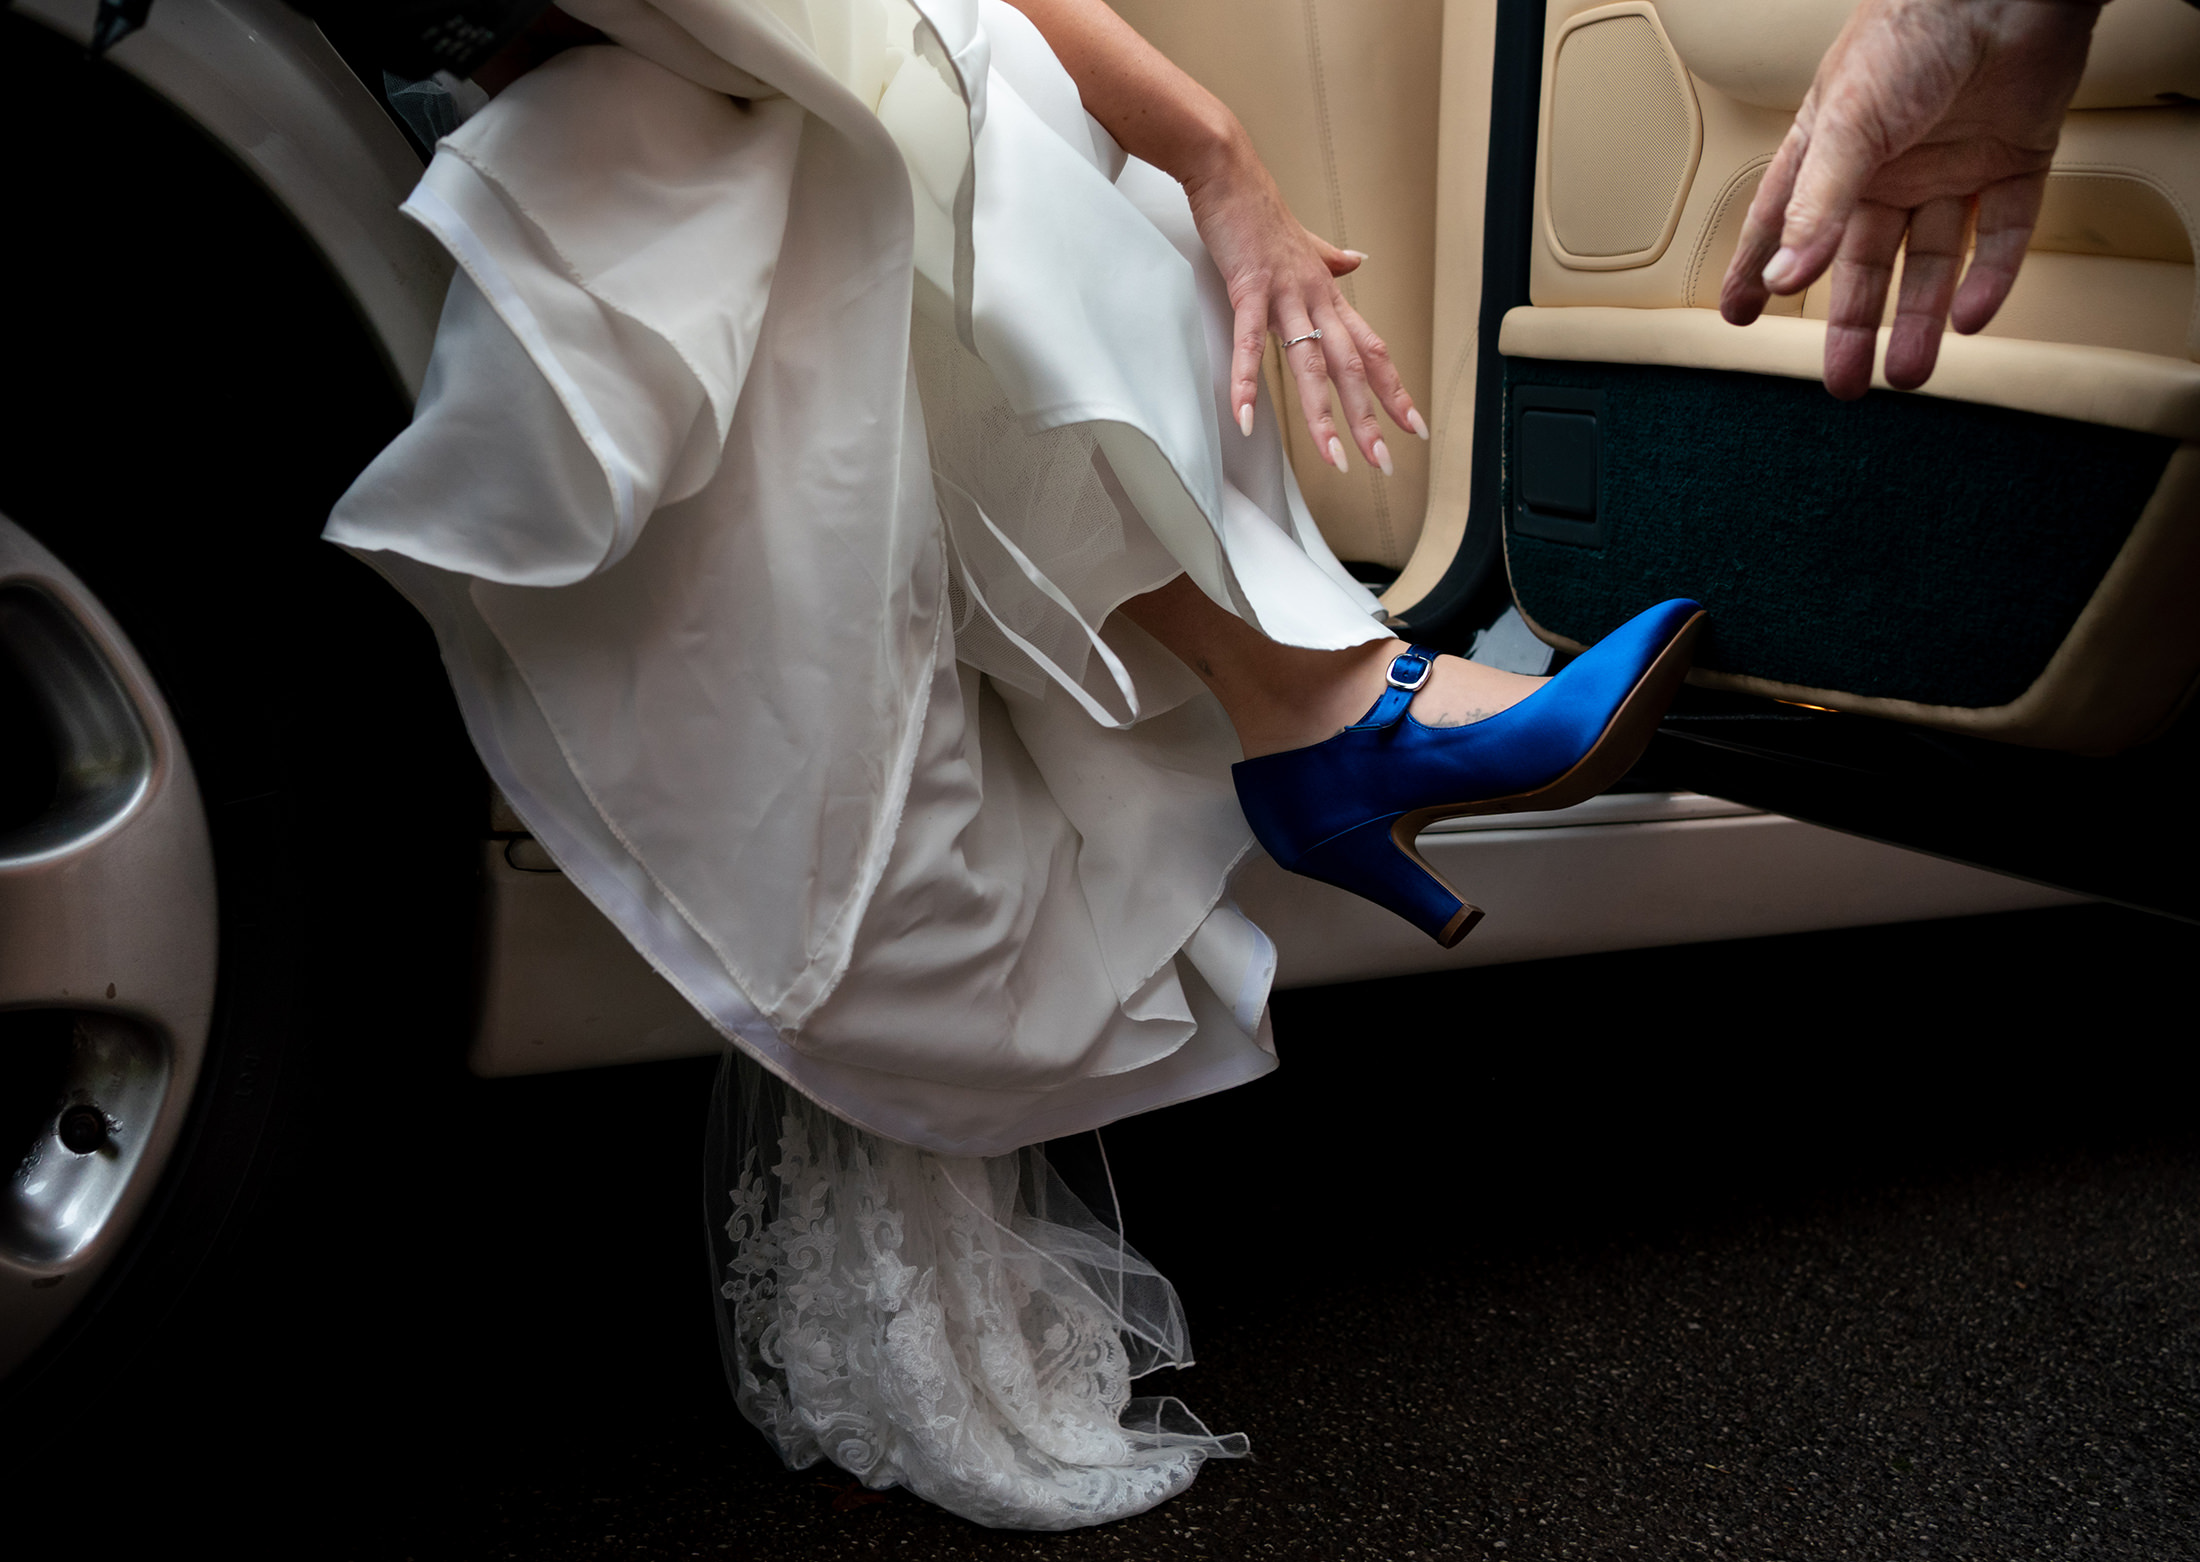 A bride steps out of the car wearing a blur shoe during this wedding in Altrincham in Cheshire